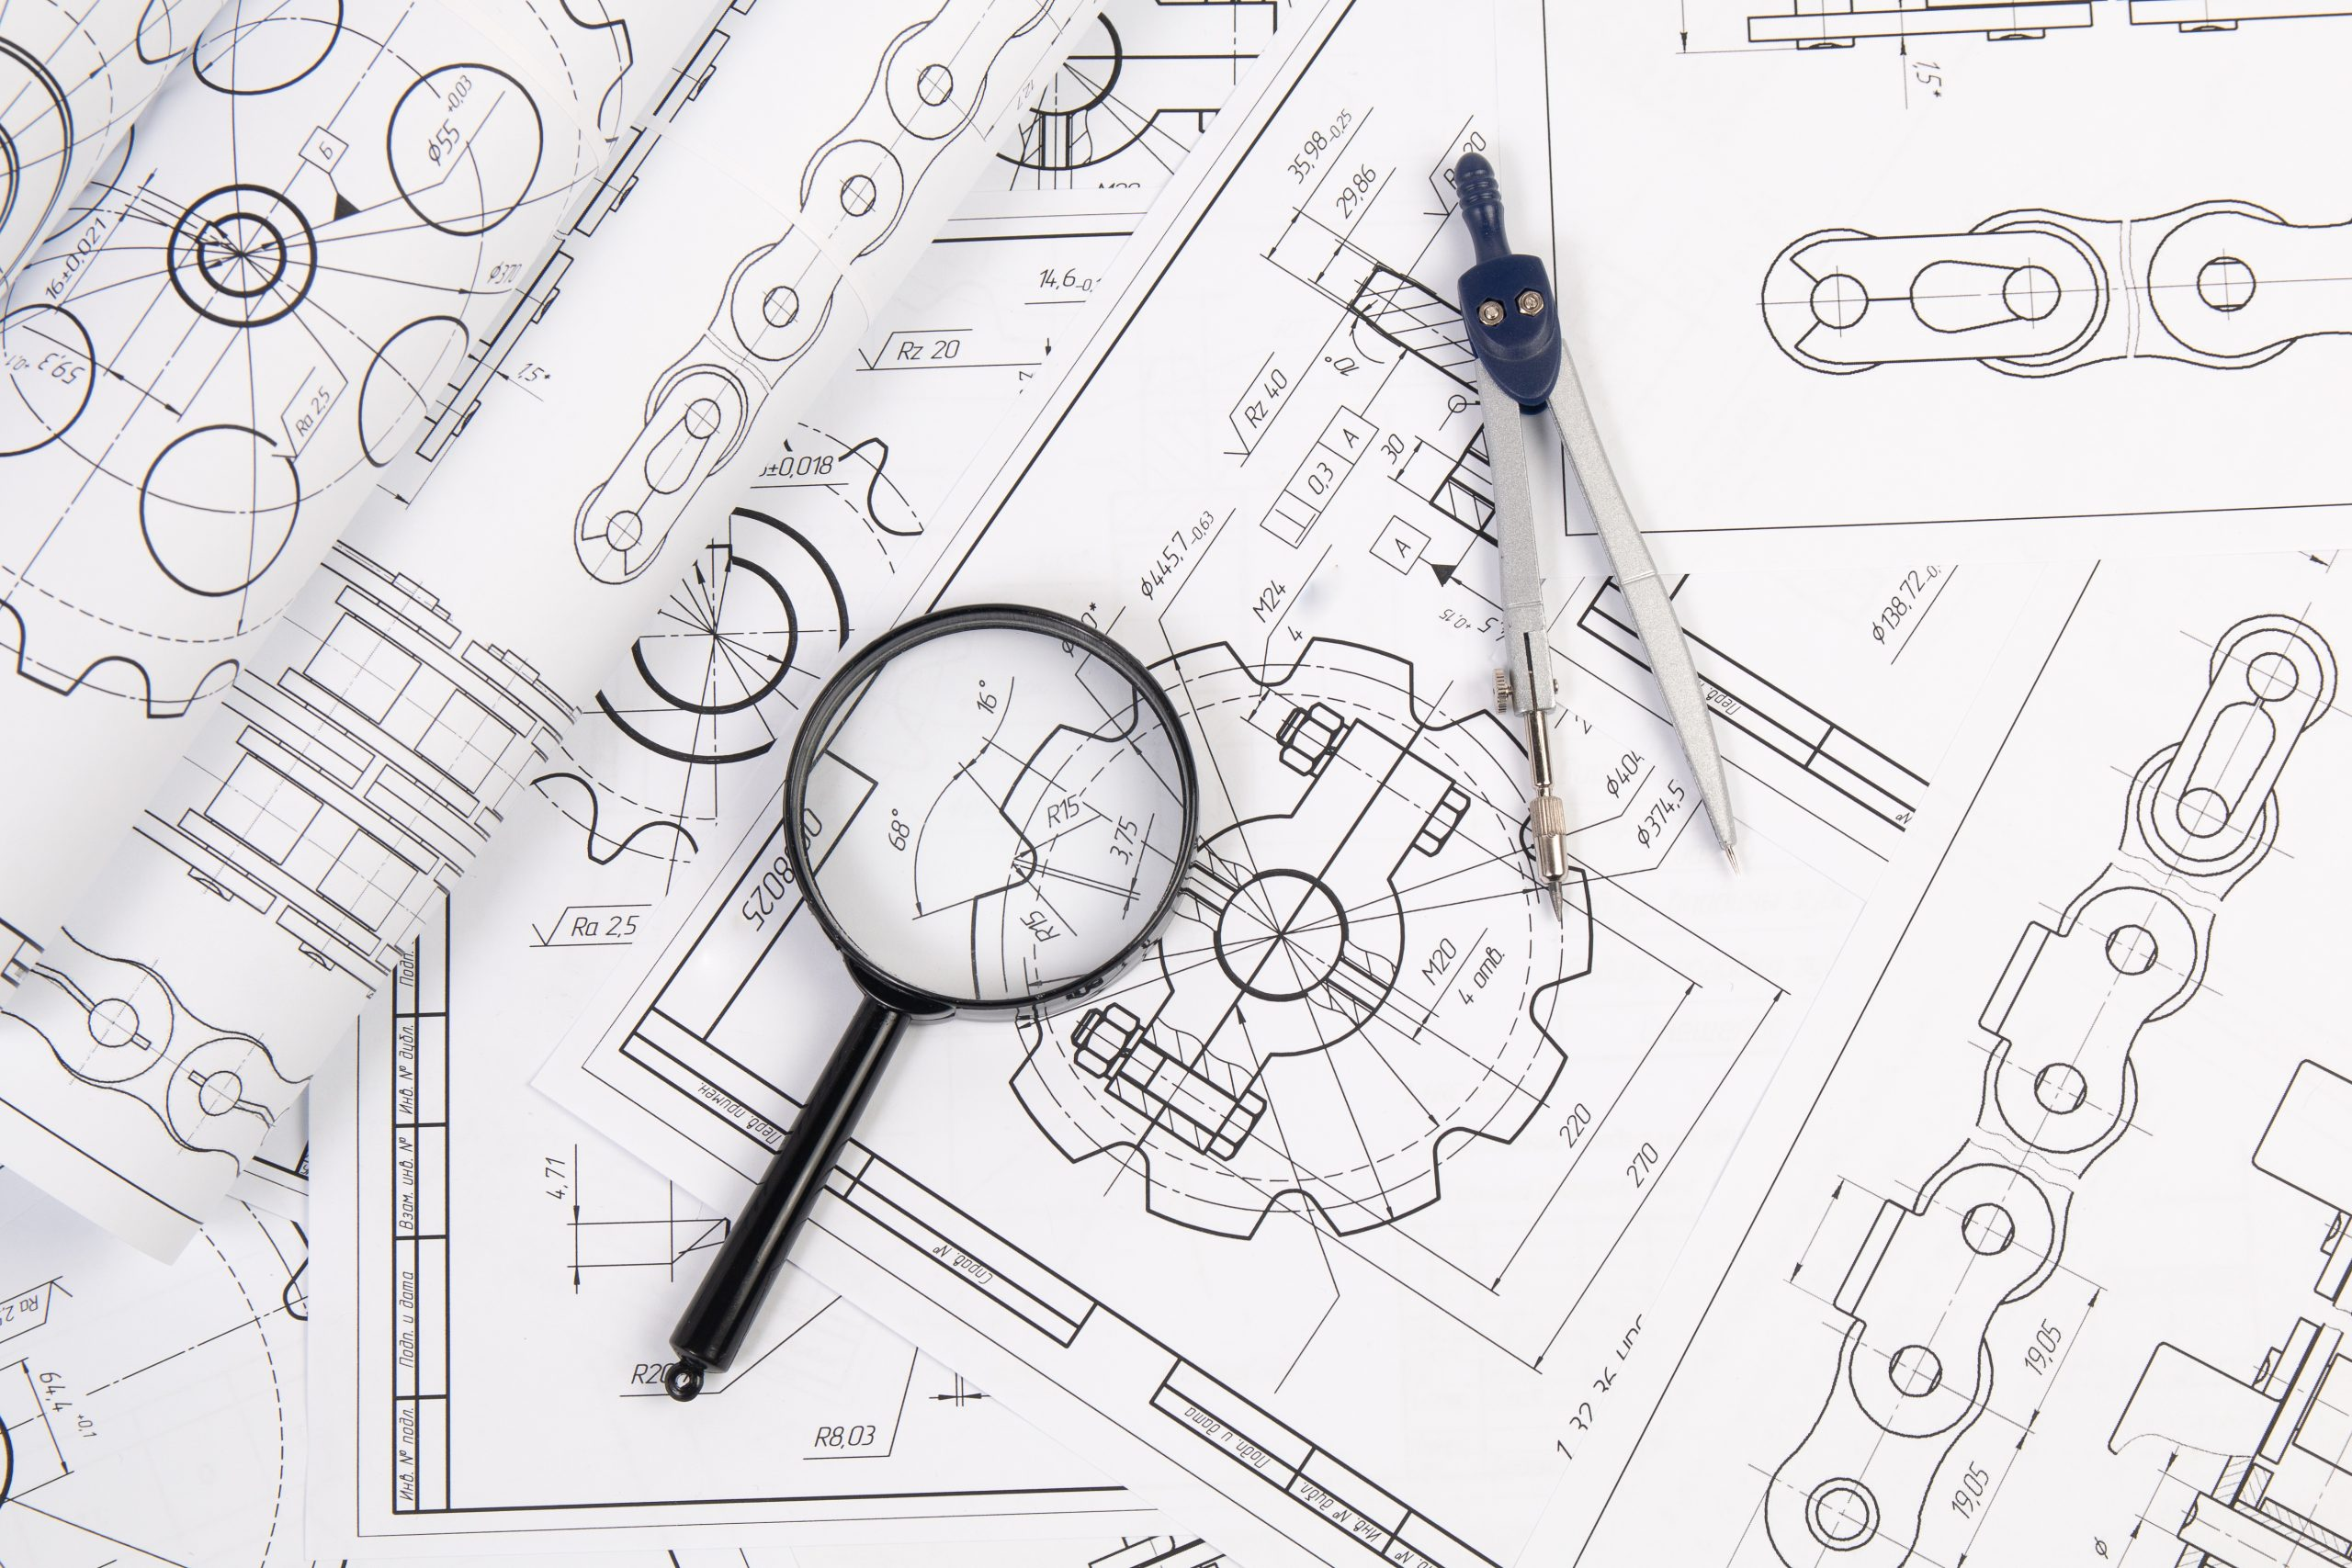 Industrial chain drawings, engineering compass and magnifying glass